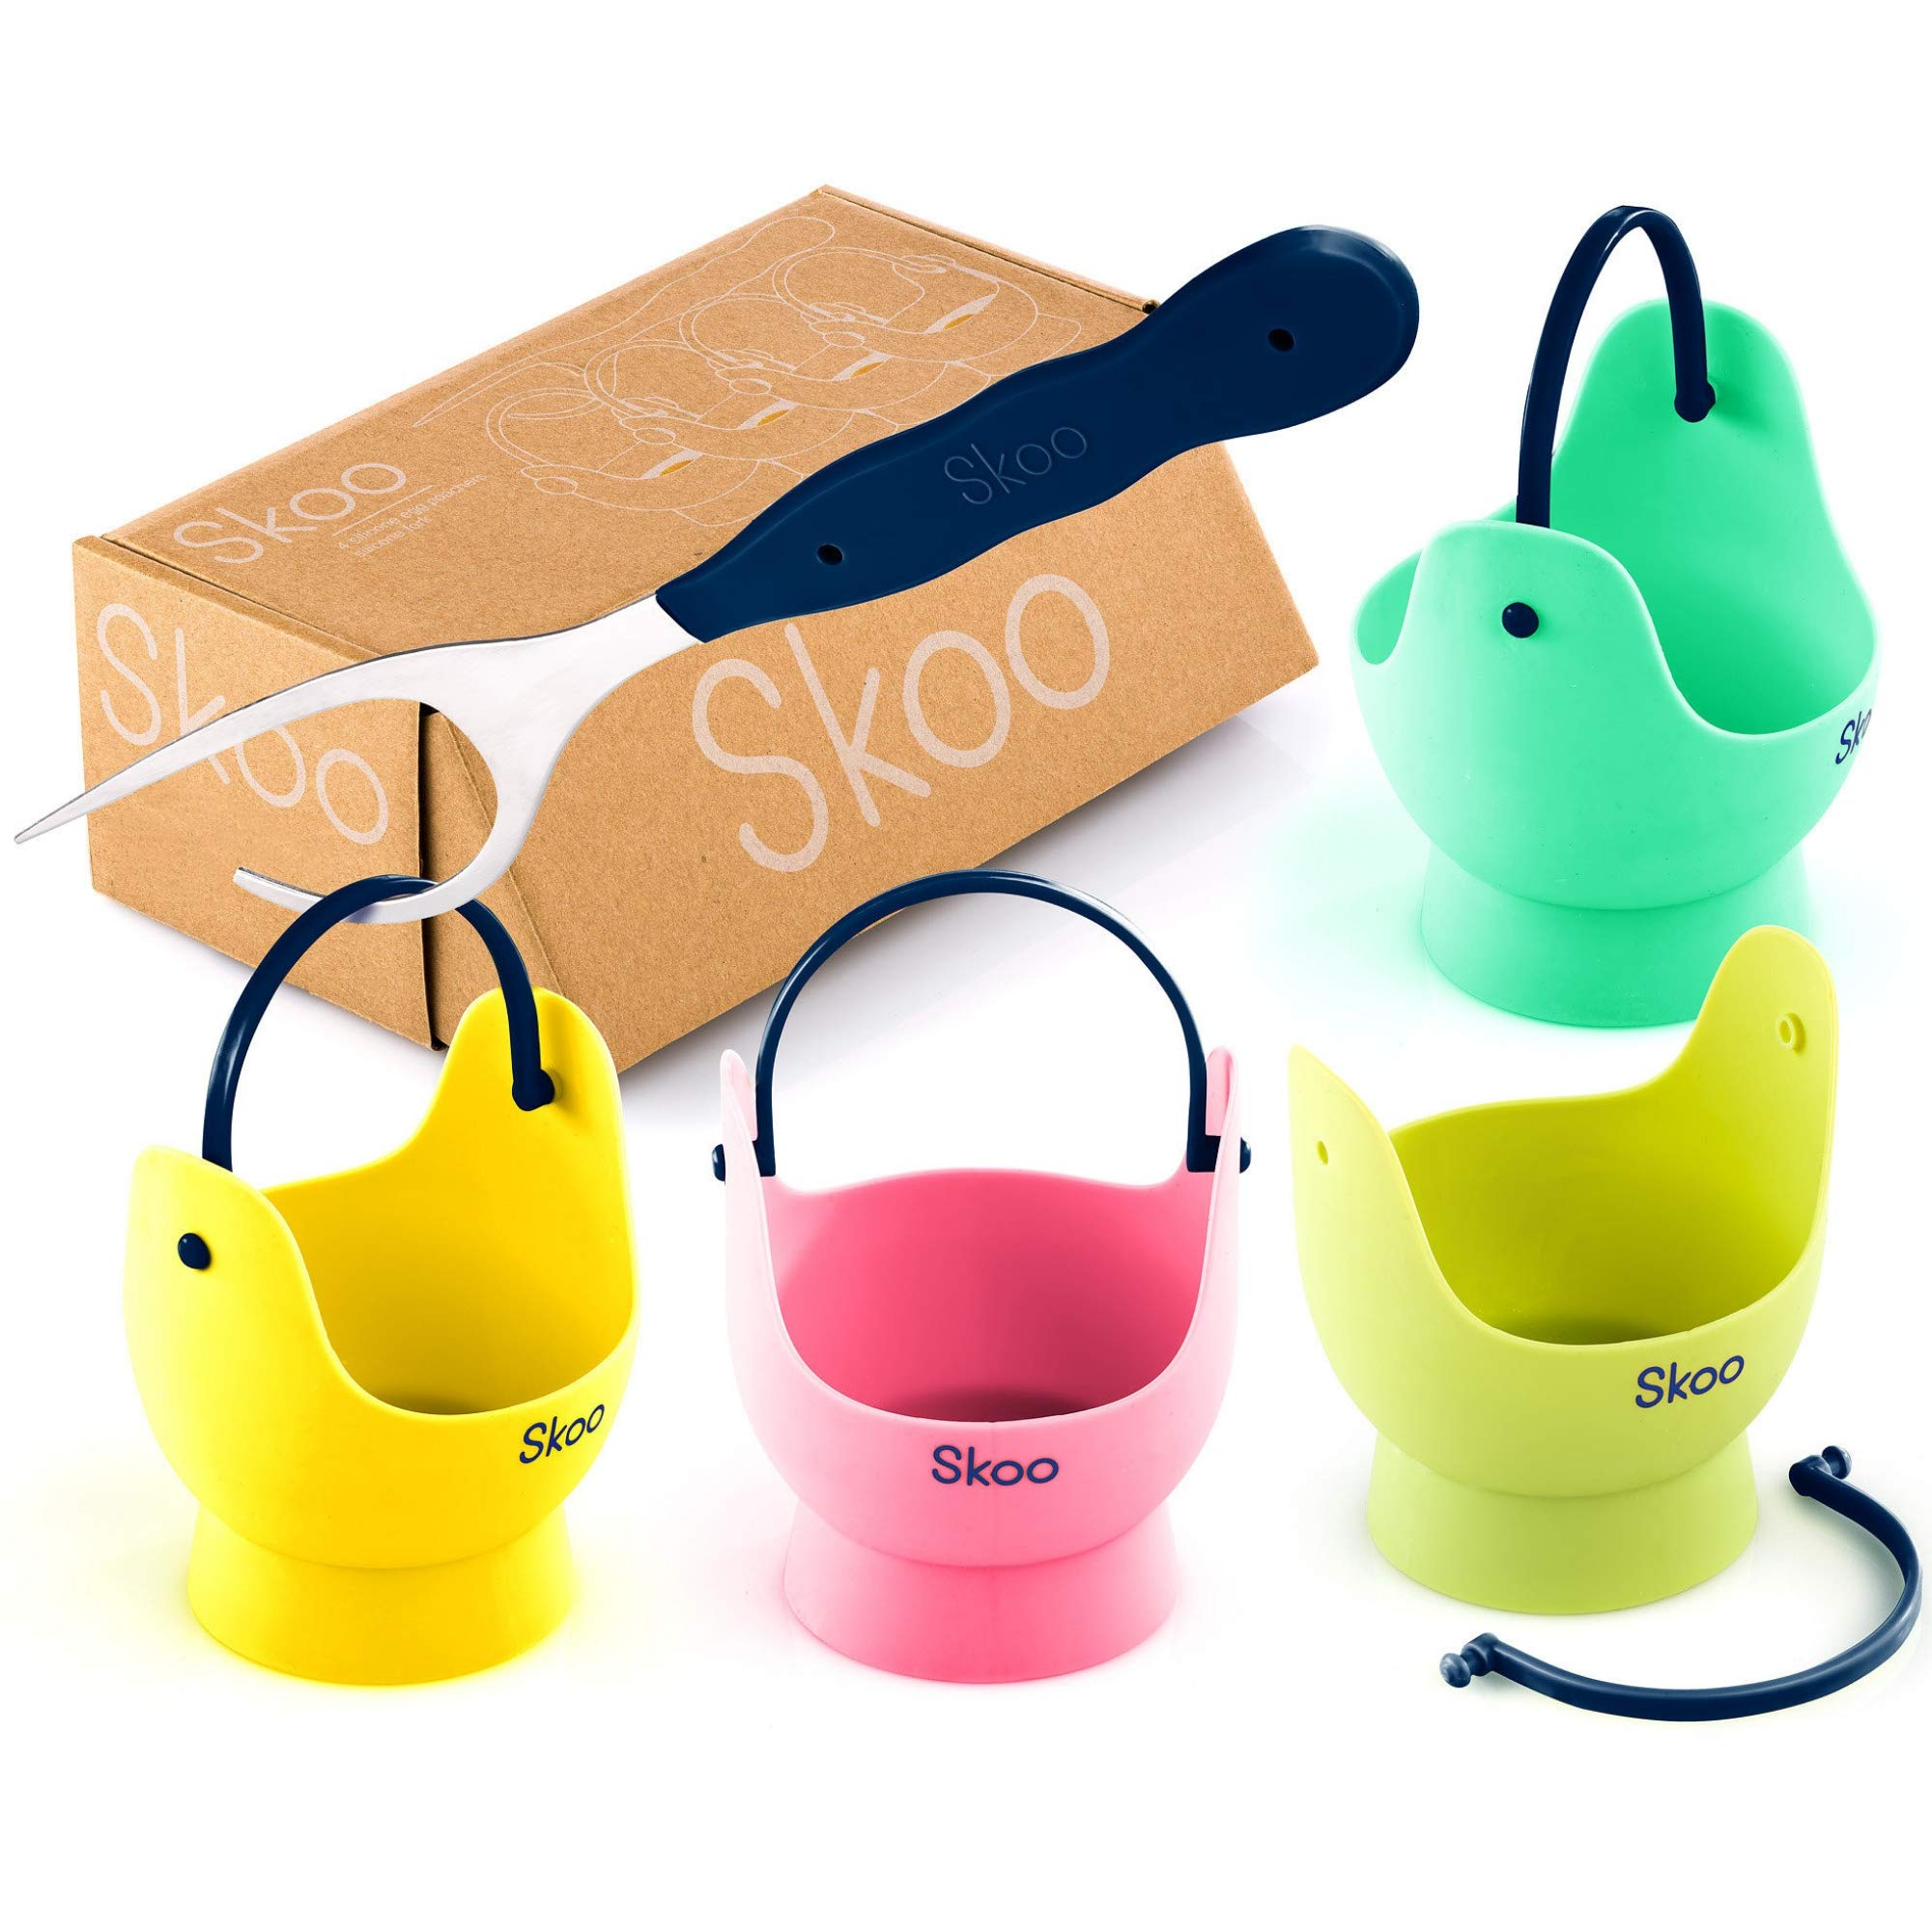 Egg Poacher - Skoo Silicone Egg Poaching Cups + Fork + Bonus eBook - Egg Cooker Set - Perfect Poached Egg Maker - For Stove Top, Microwave and Instant Pot by Skoo